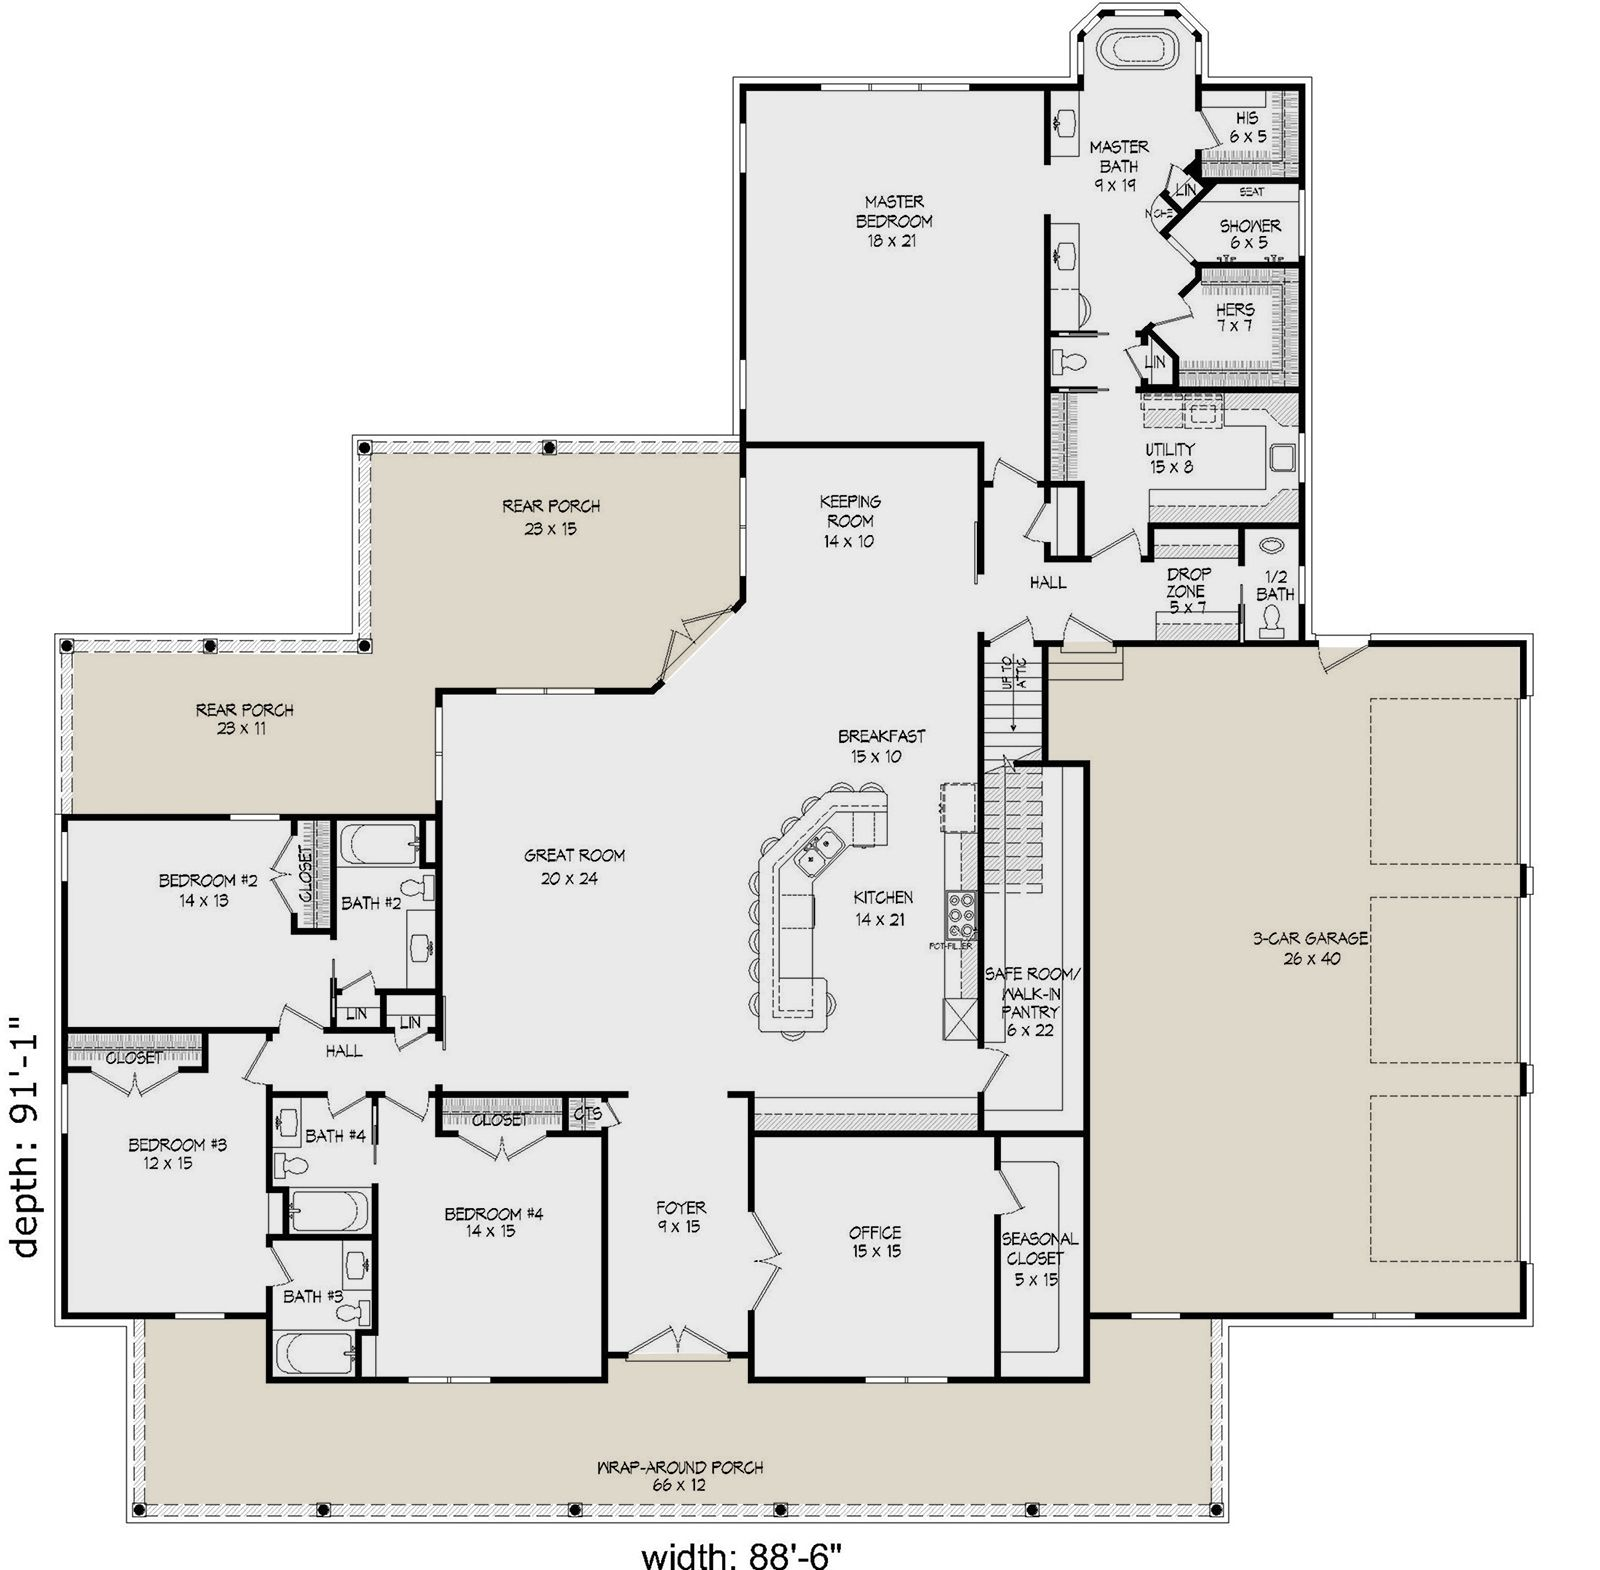 House Plan 940 00137 Country Plan 3 617 Square Feet 4 Bedrooms 4 5 Bathrooms House Plans Country Style House Plans Ranch Style House Plans